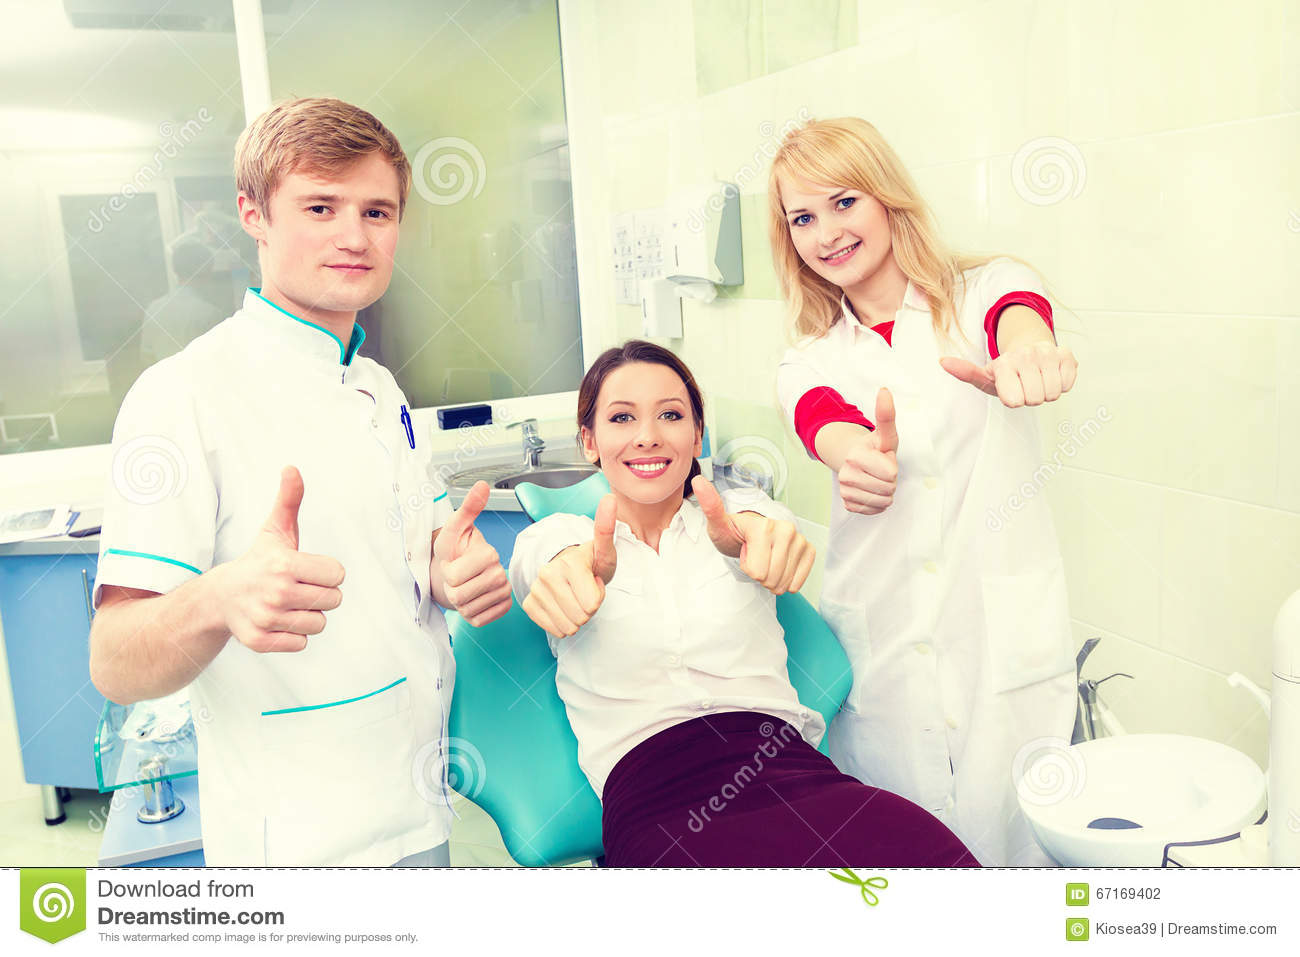 Woman Giving Thumbs Up At Dentist Office  Stock Photo - Image of